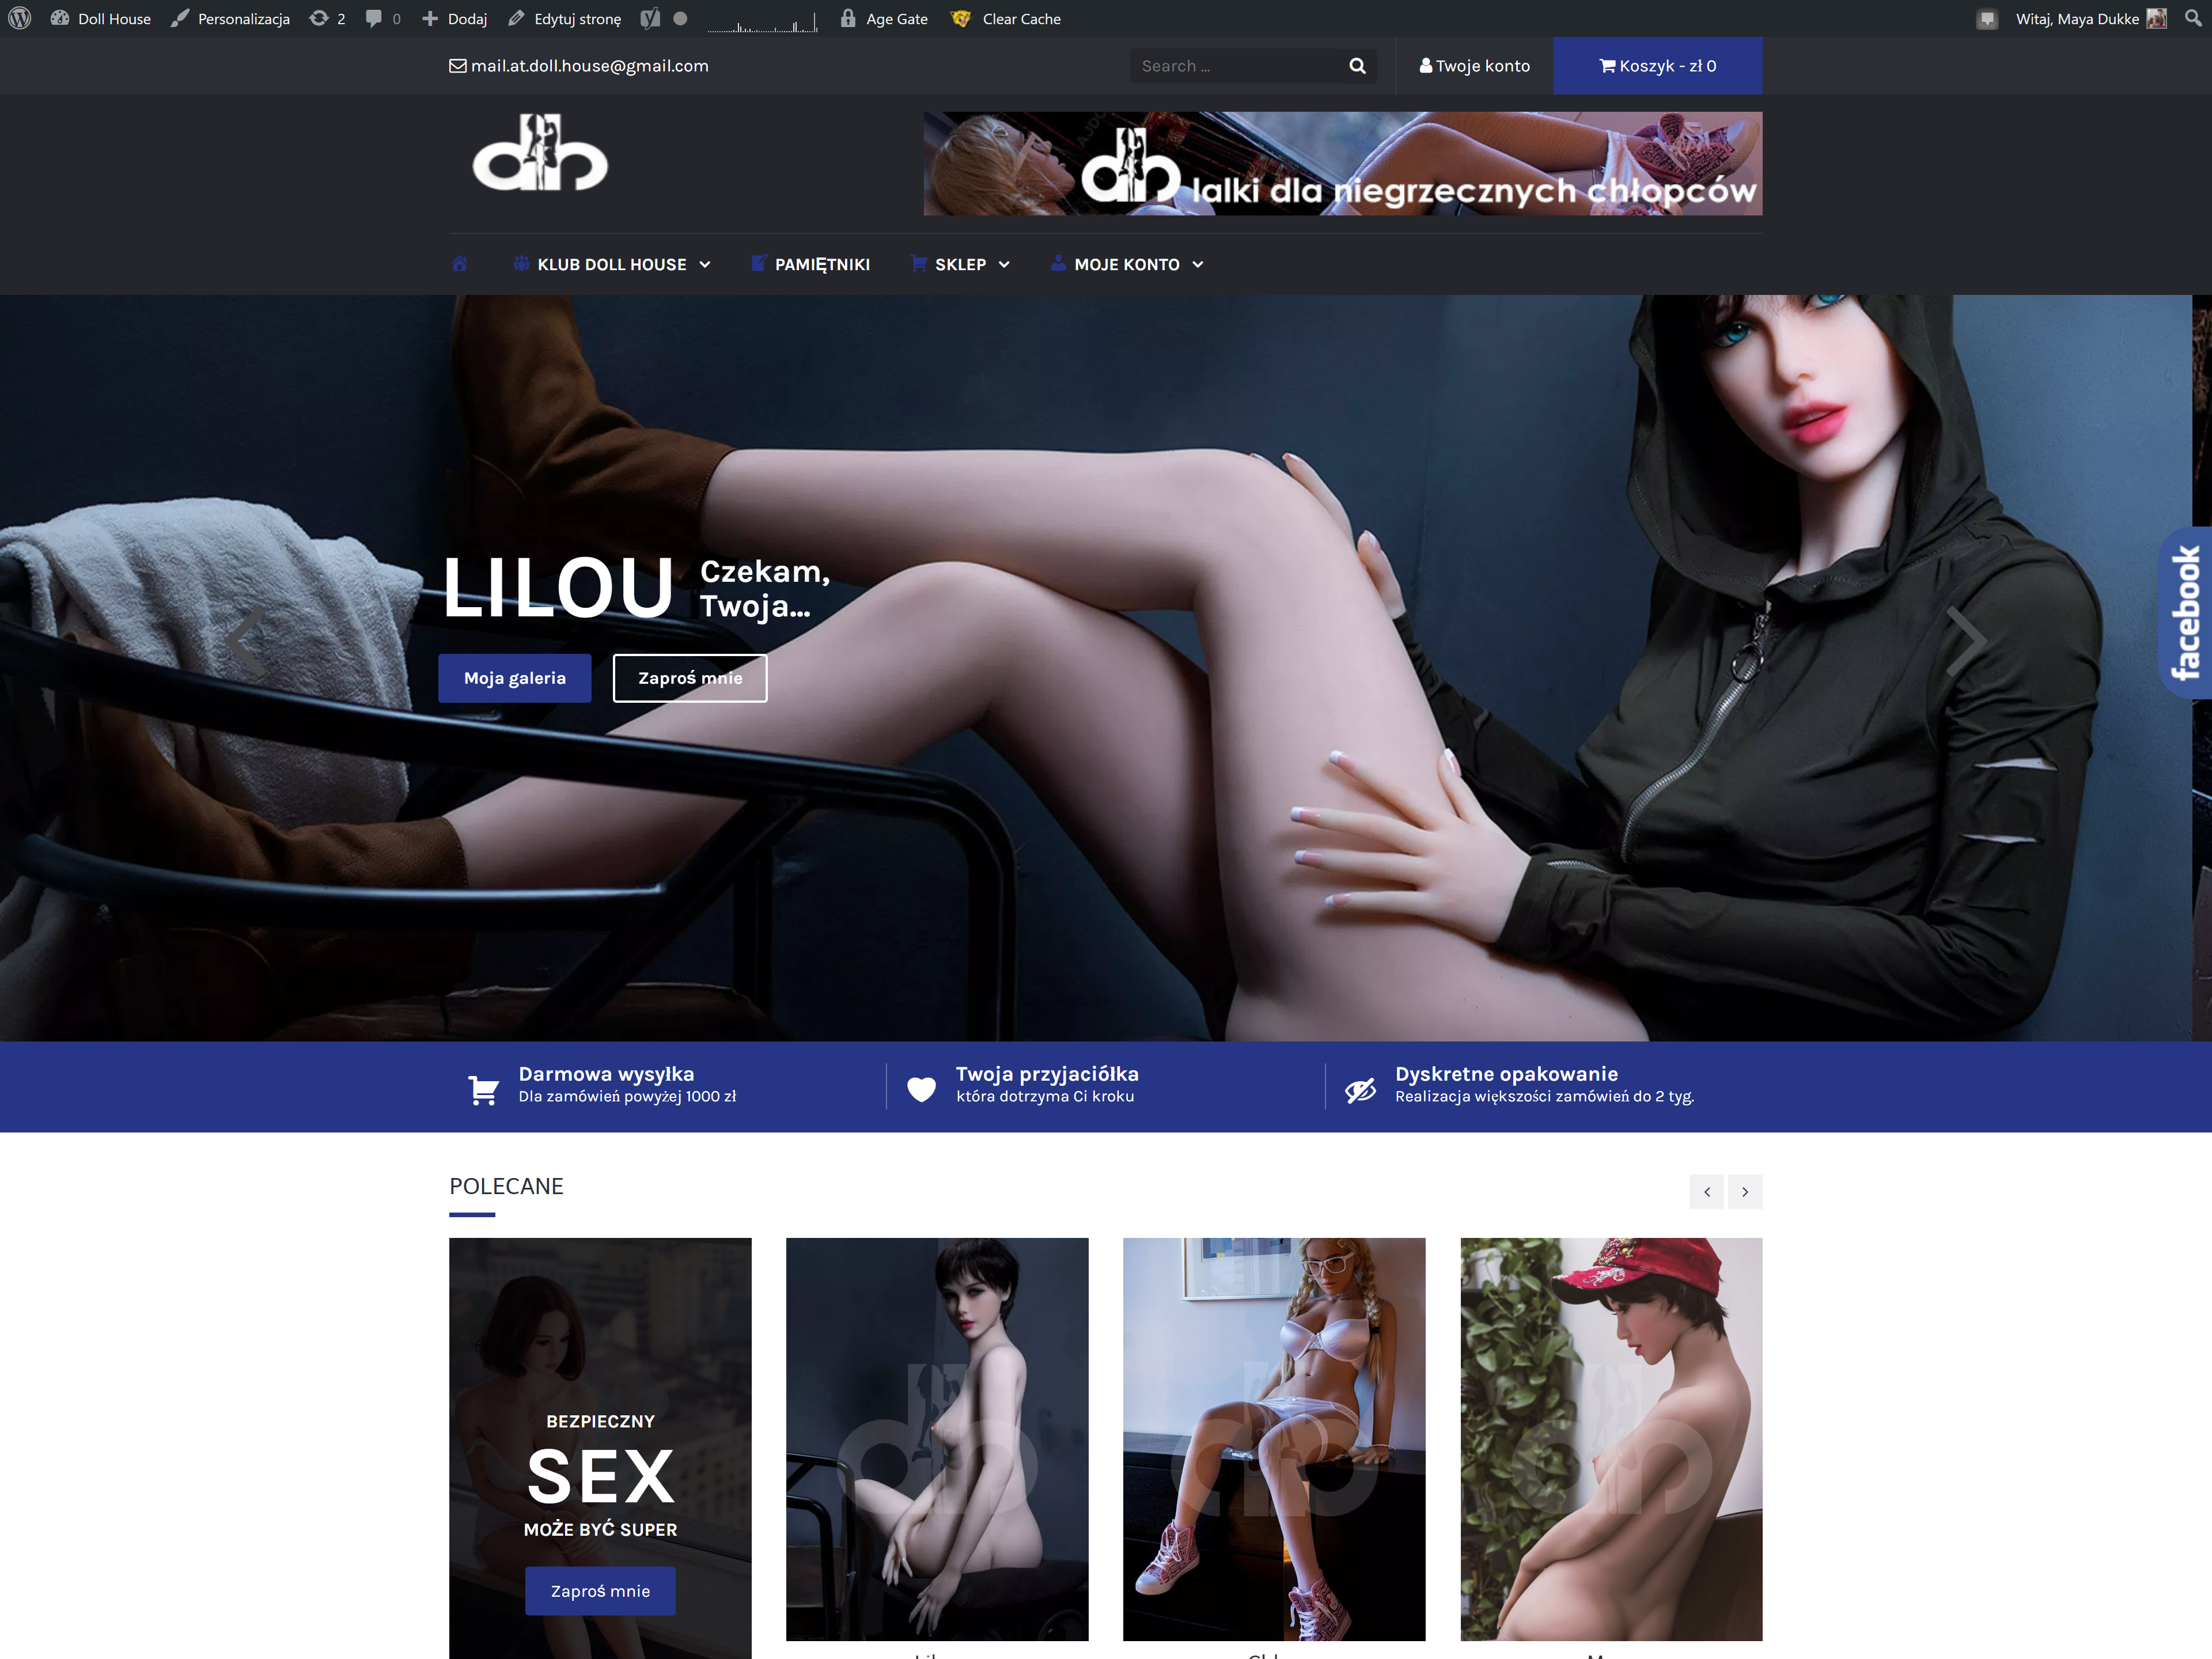 Doll House – website and e-commerce